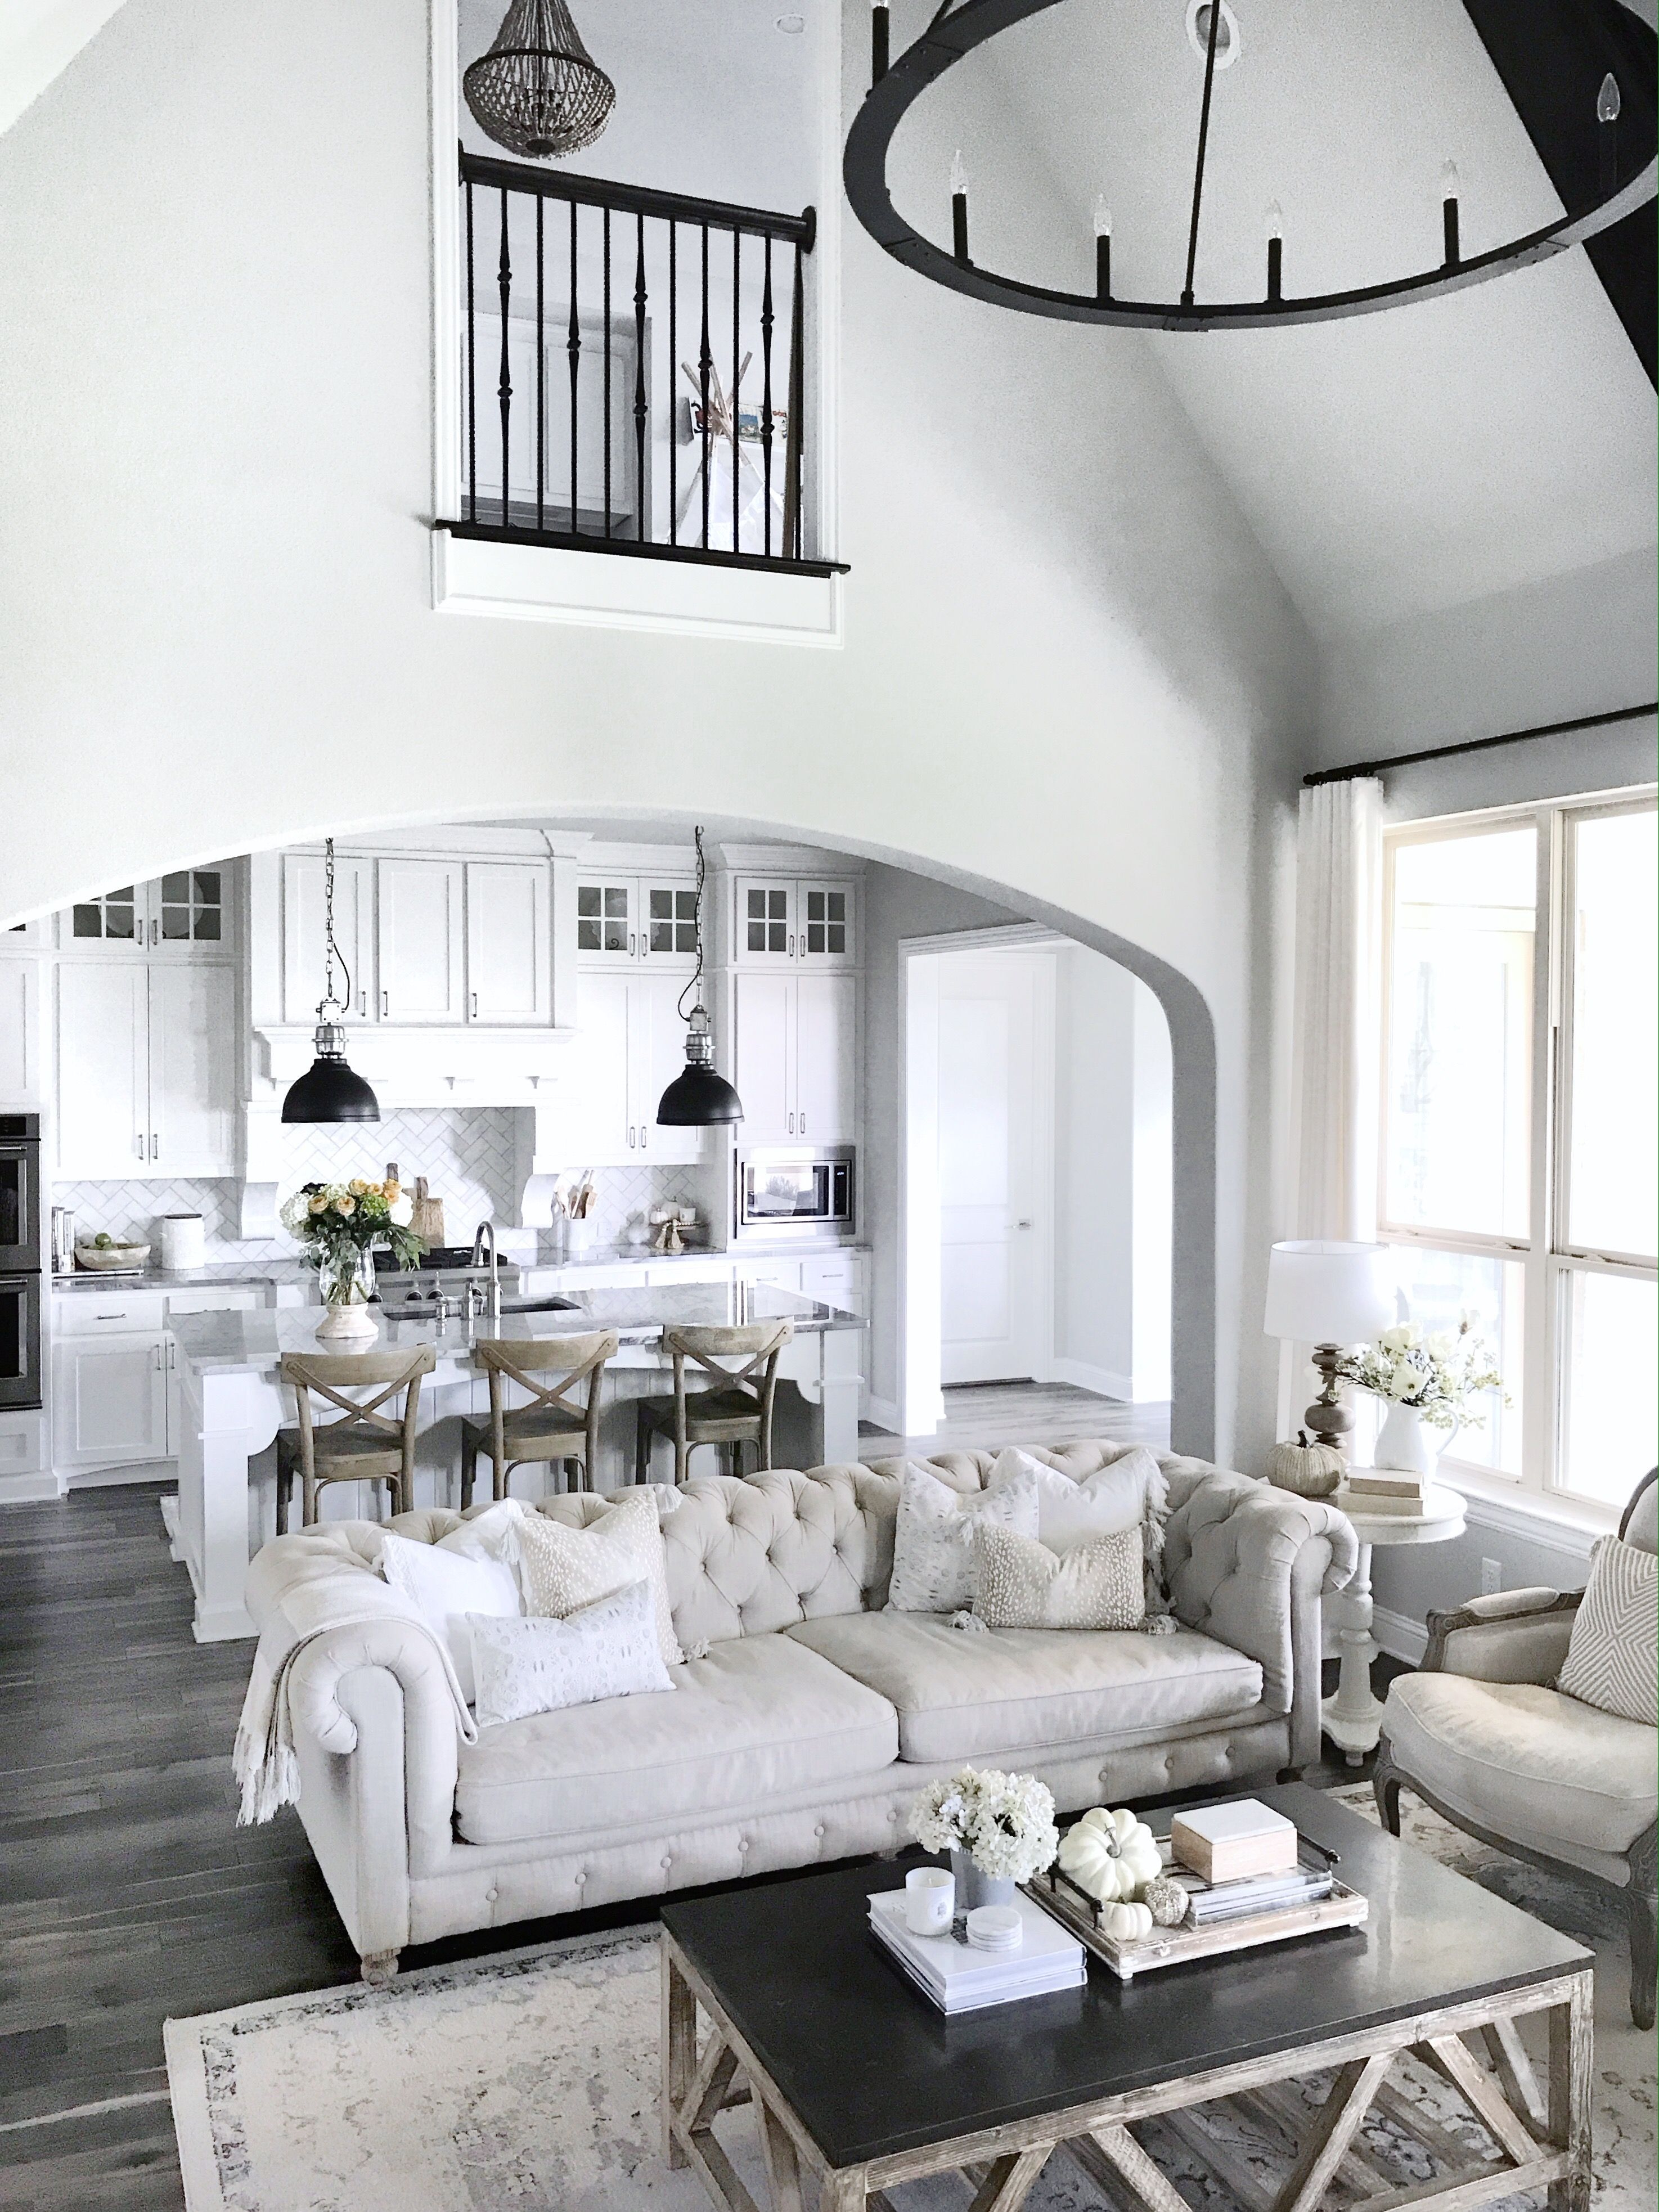 Pin On Home Decorating Style Texas living room decor